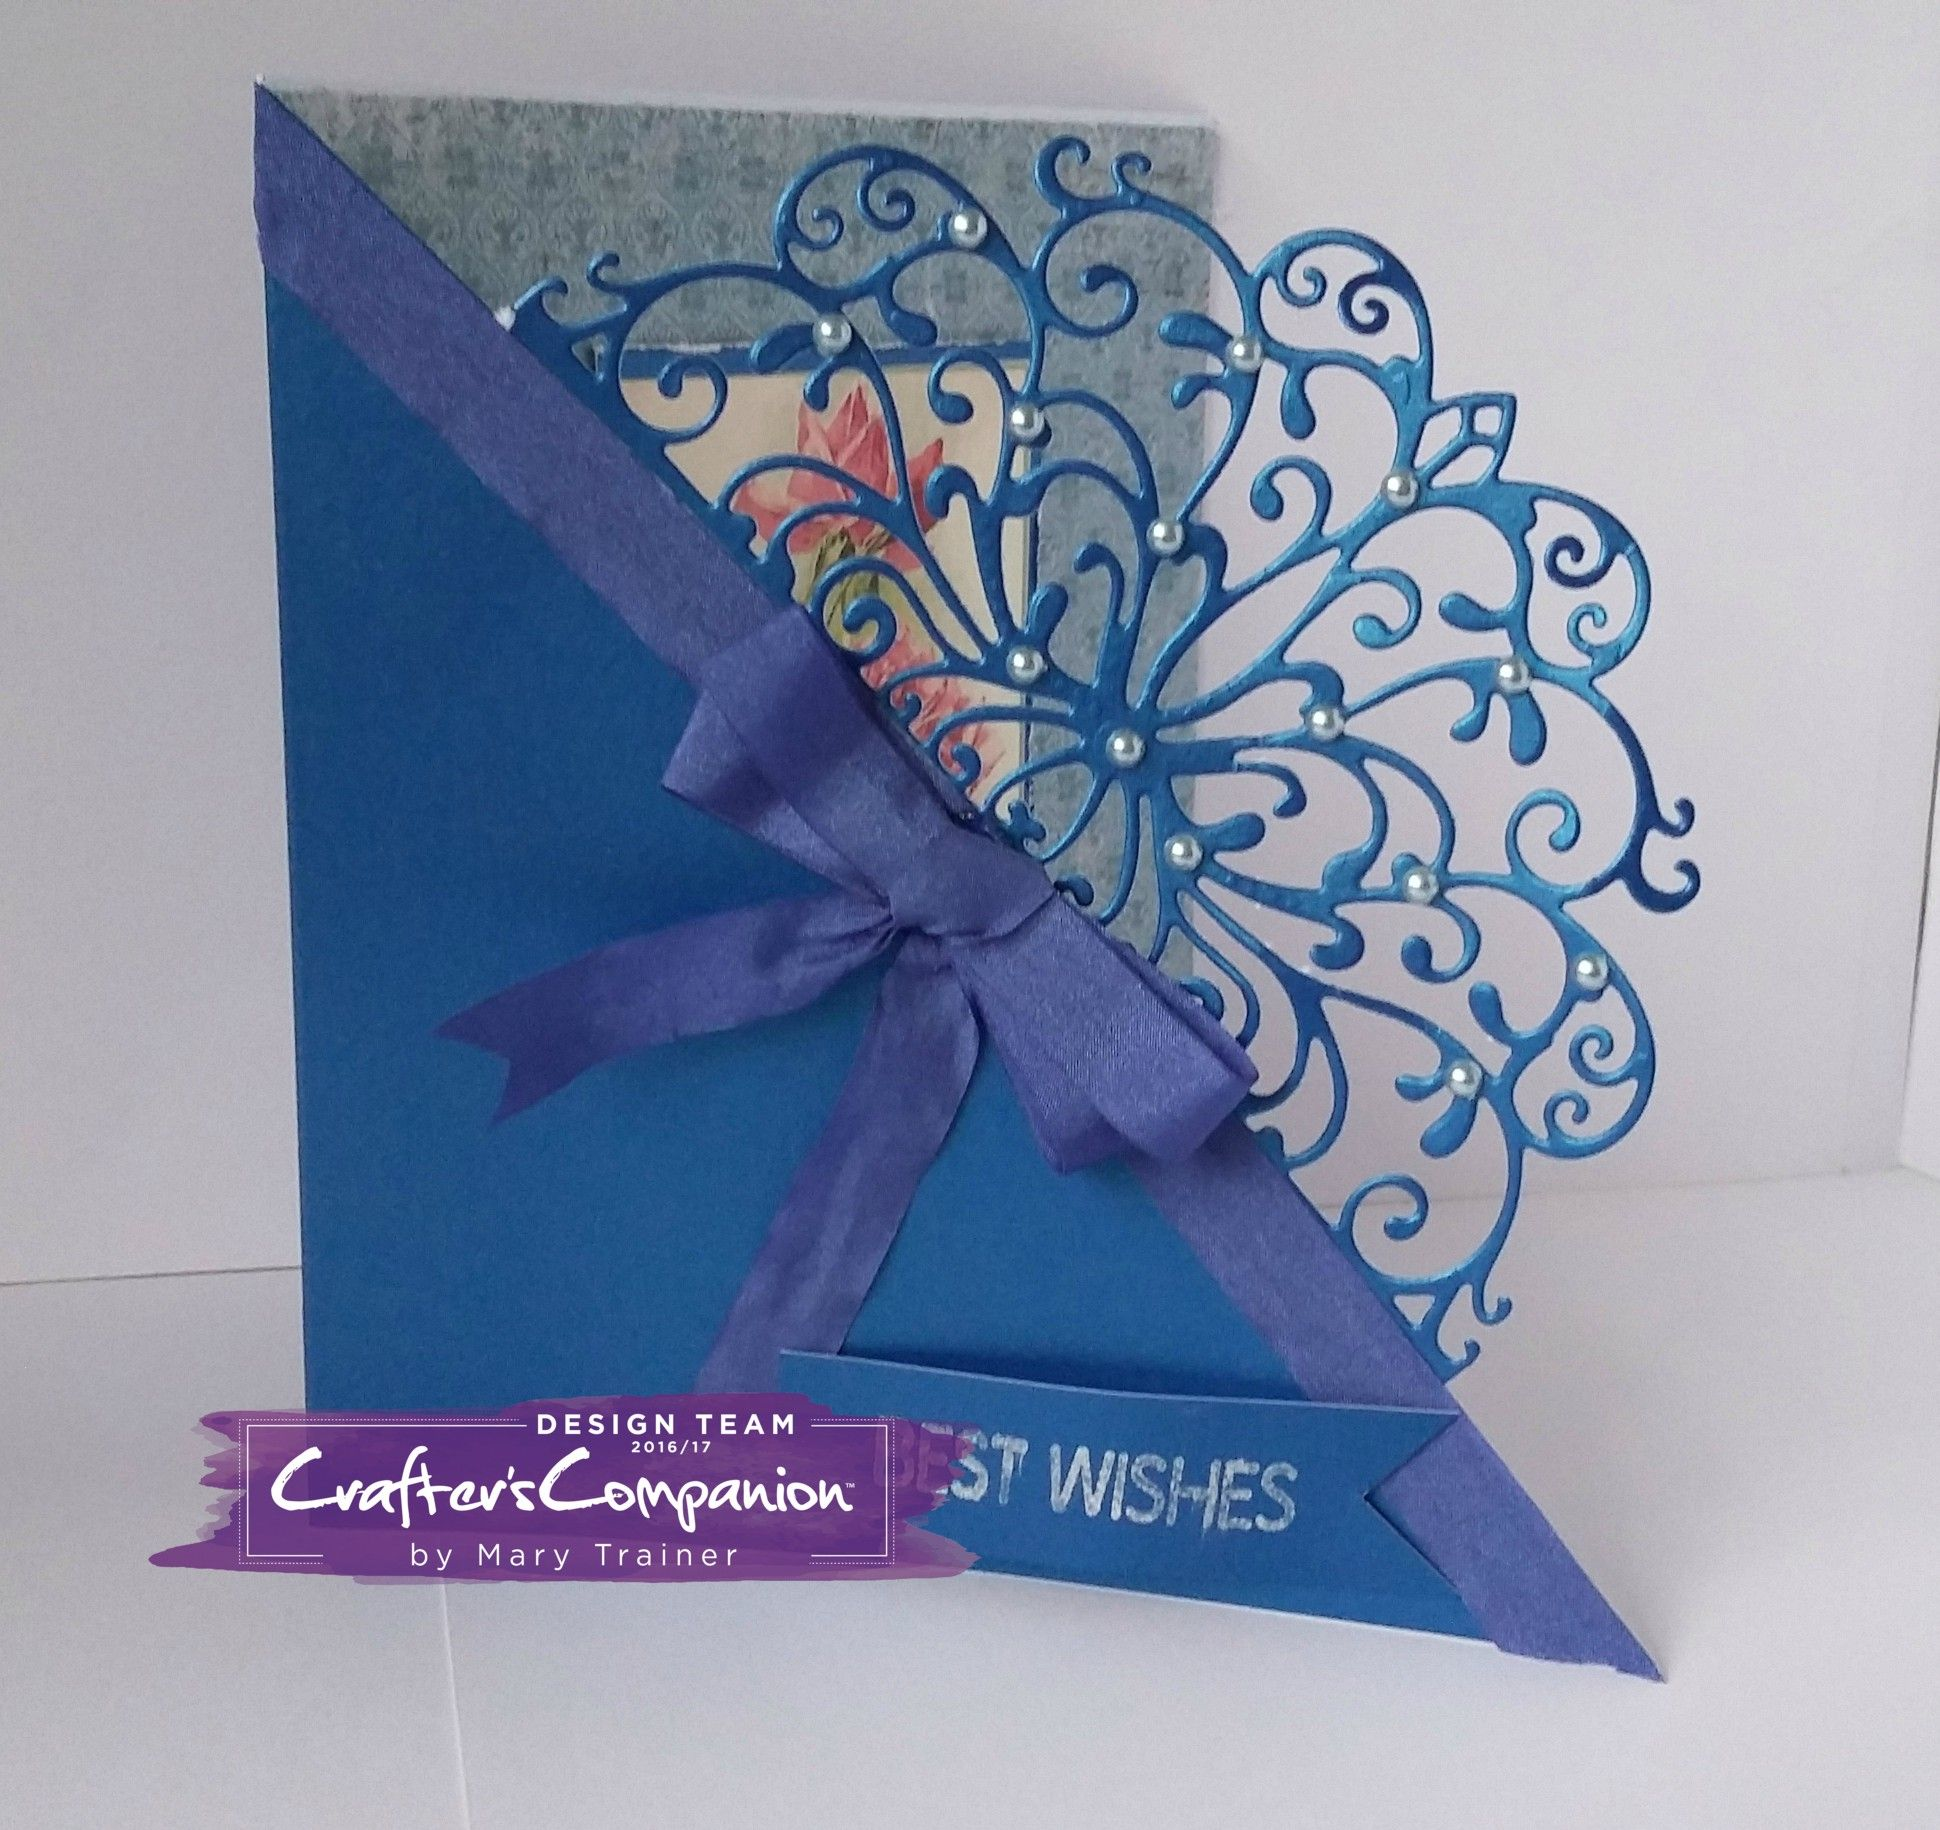 Crafters Companion Die/'sire A5 Hybrid Create a Card Dies Any 1 or COMPLETE SET